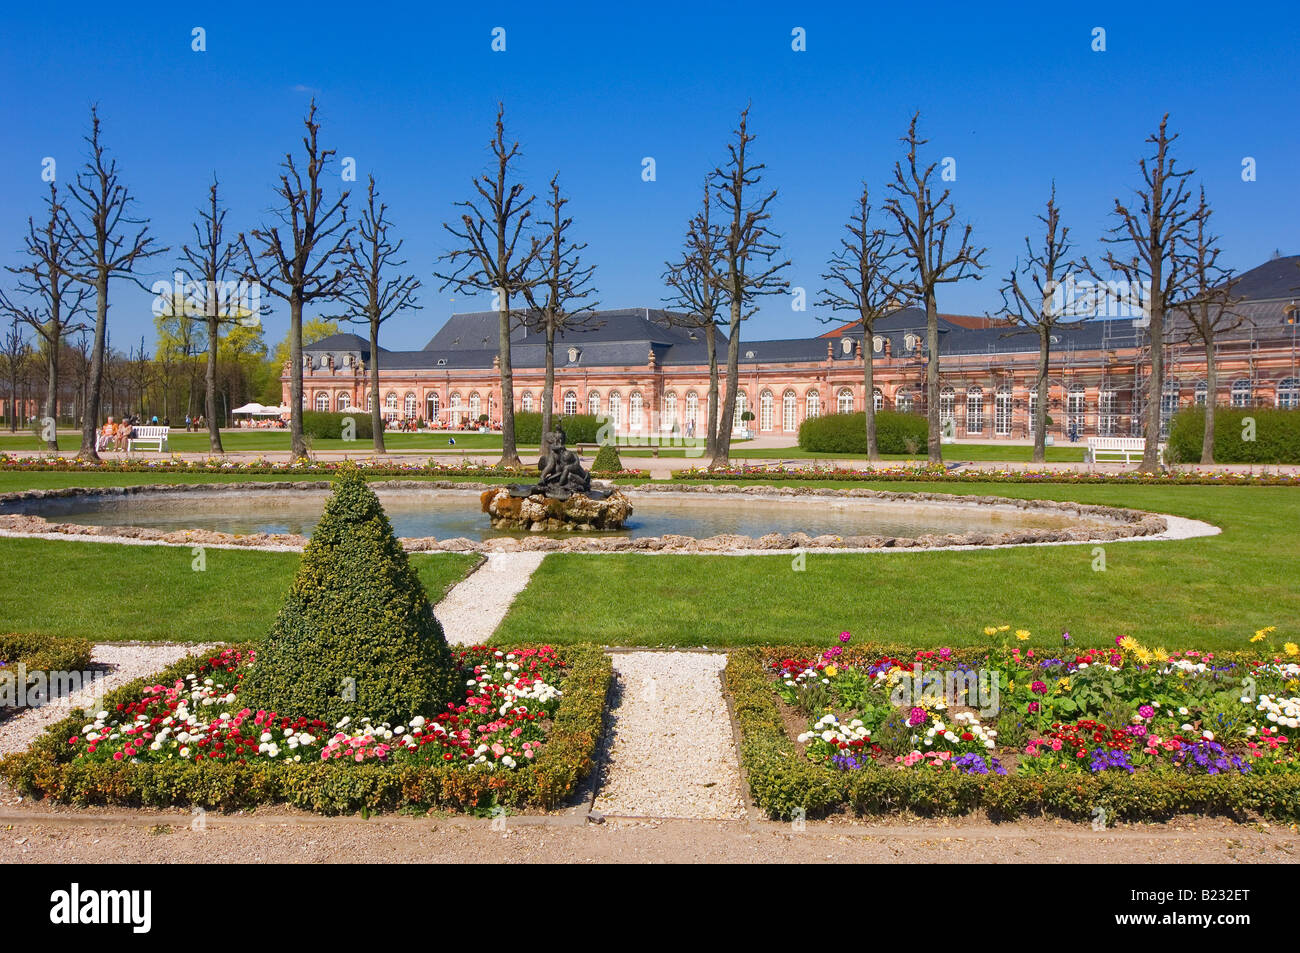 Fountain in formal garden of palace Schwetzingen Castle Baden-Wuerttemberg Germany - Stock Image